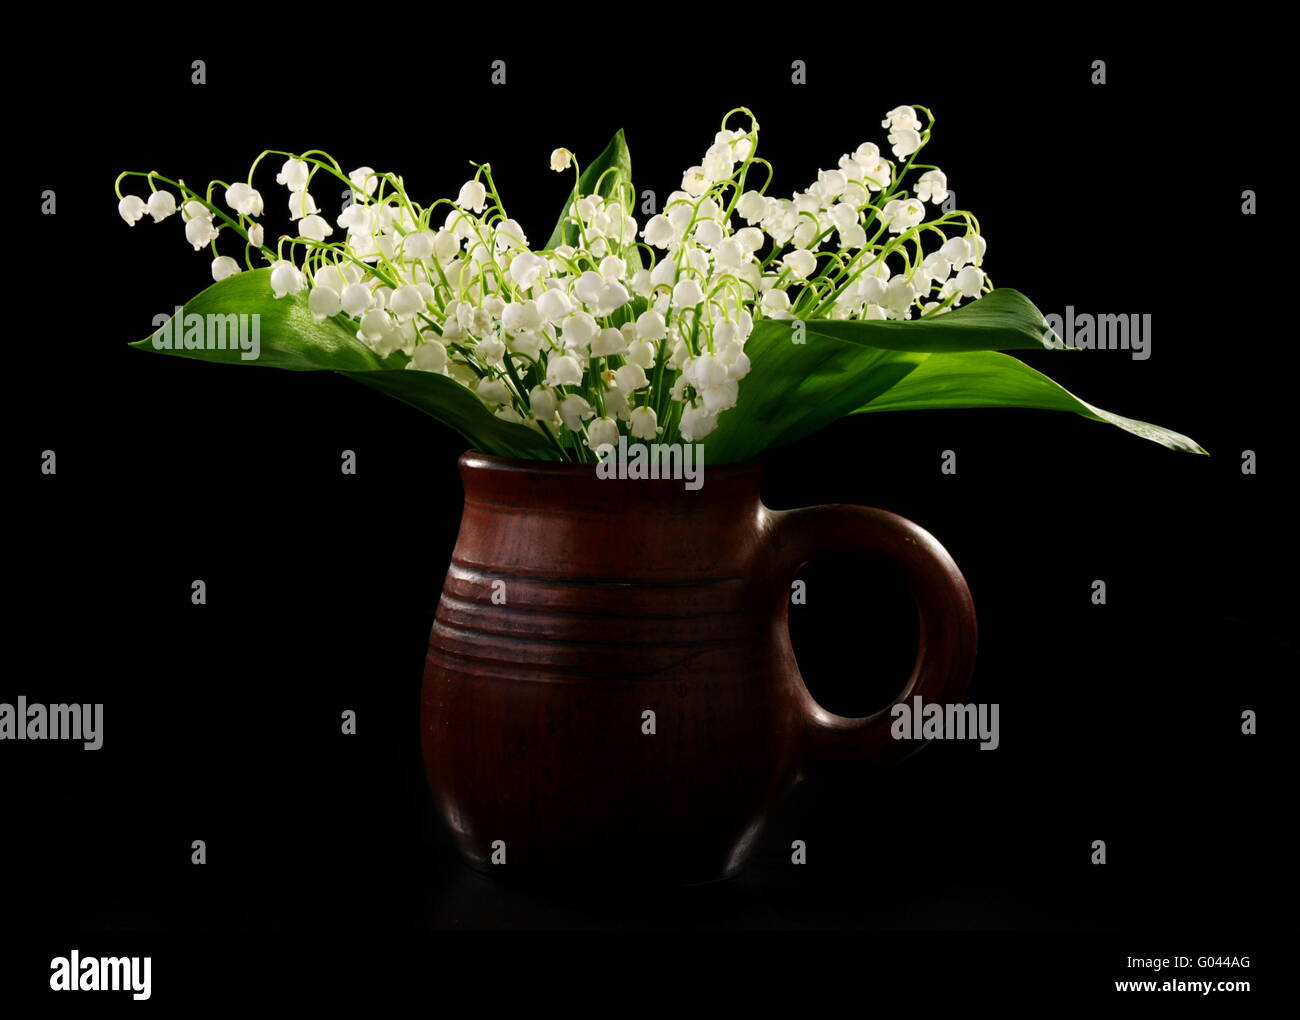 Bouquet lilies of the valley in a ceramic mug. - Stock Image